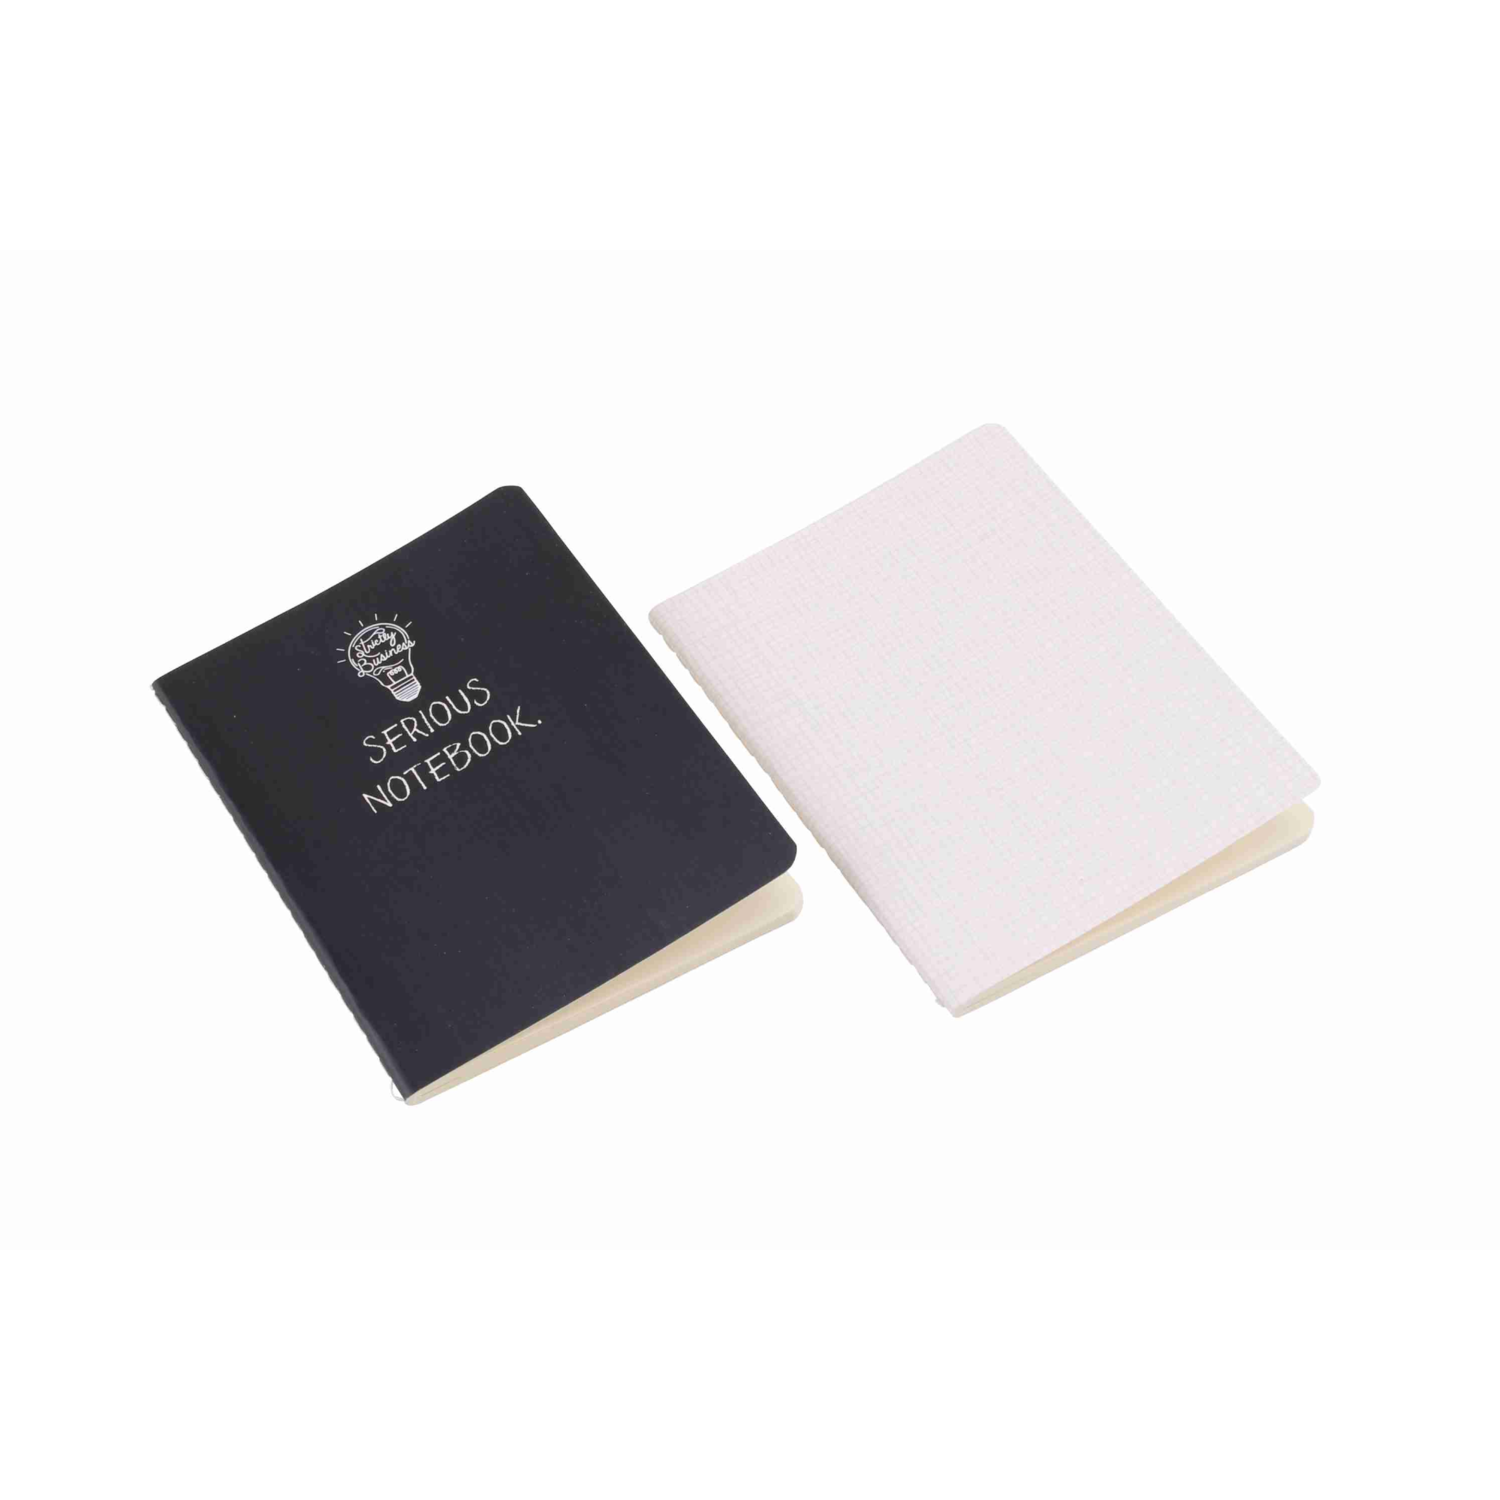 Strictly Business A6 Notebooks (Set of 2)